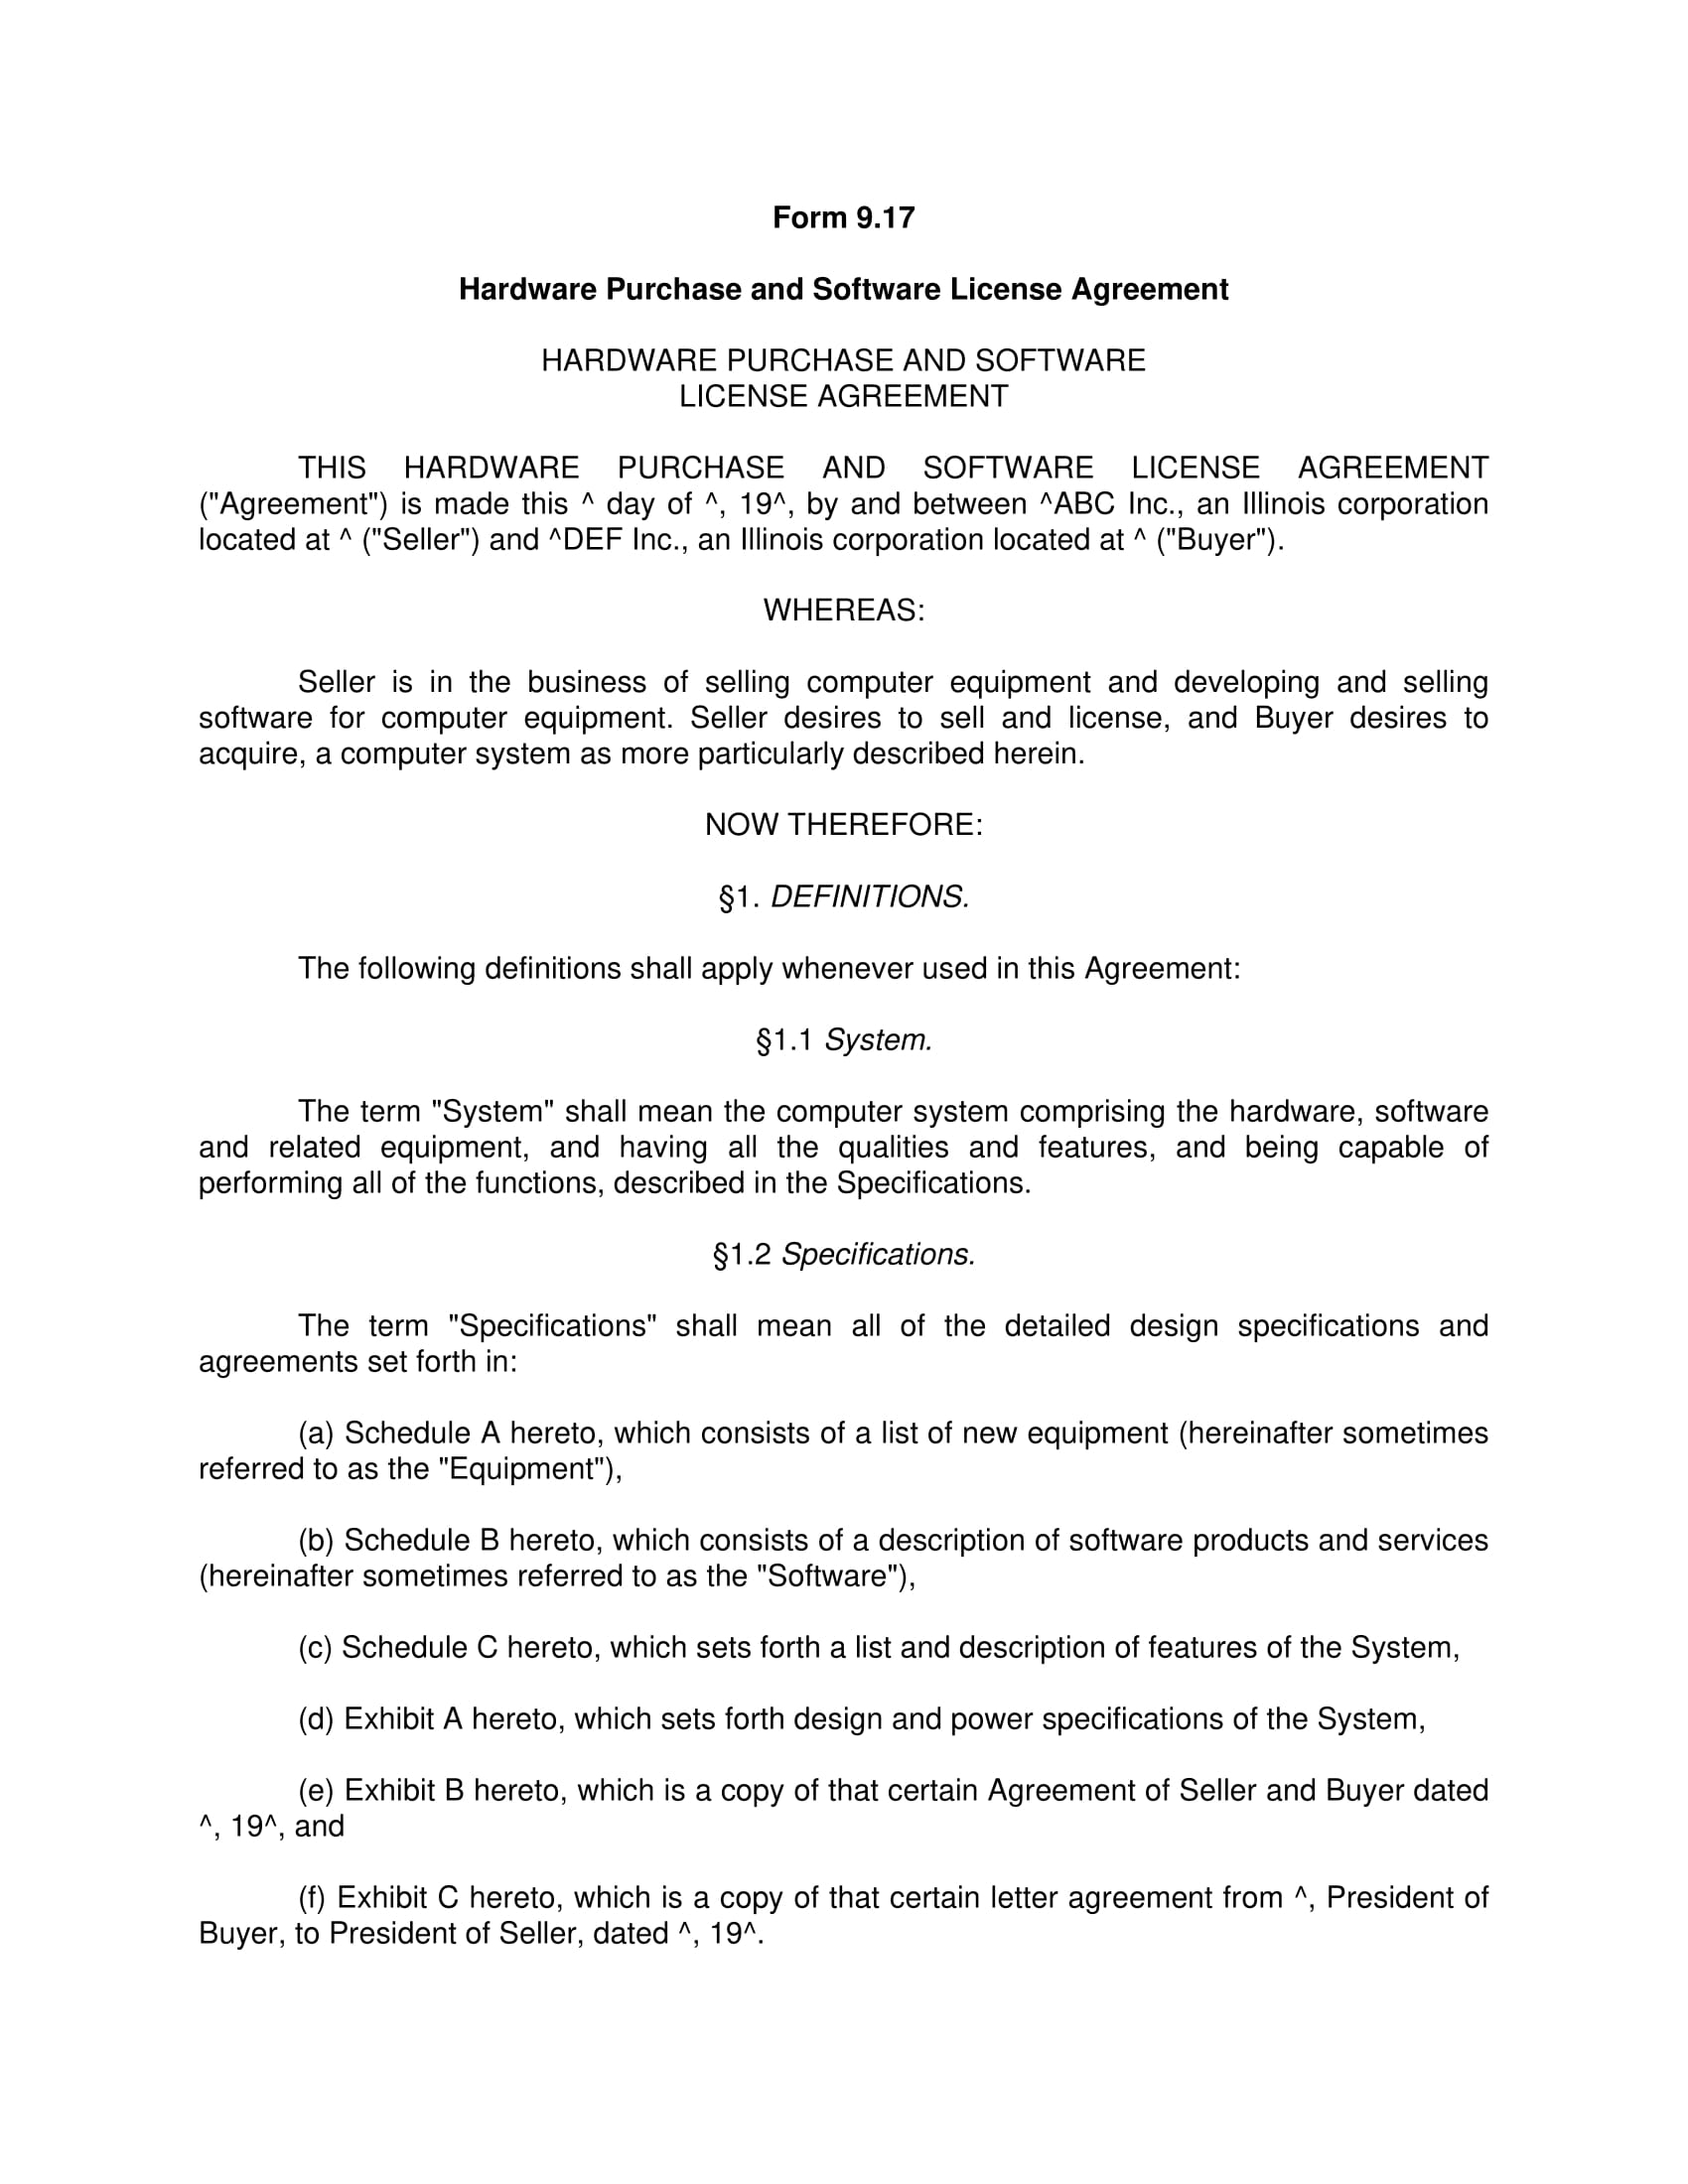 hardware purchase and software license agreement example